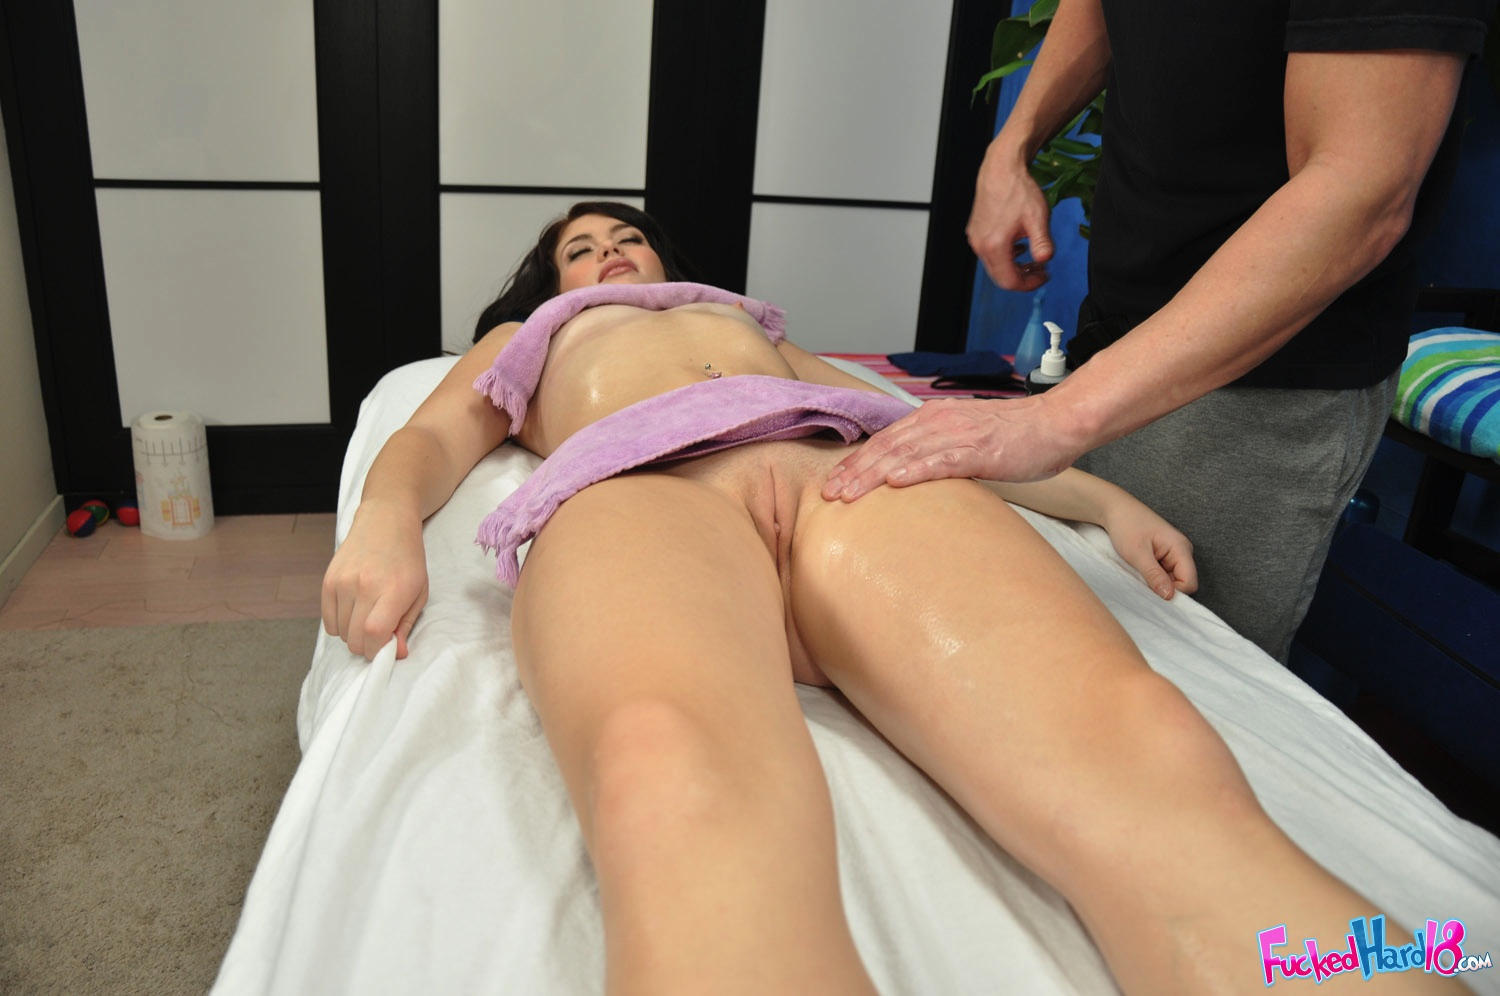 boobs doggy style. best free sex tubes!!!